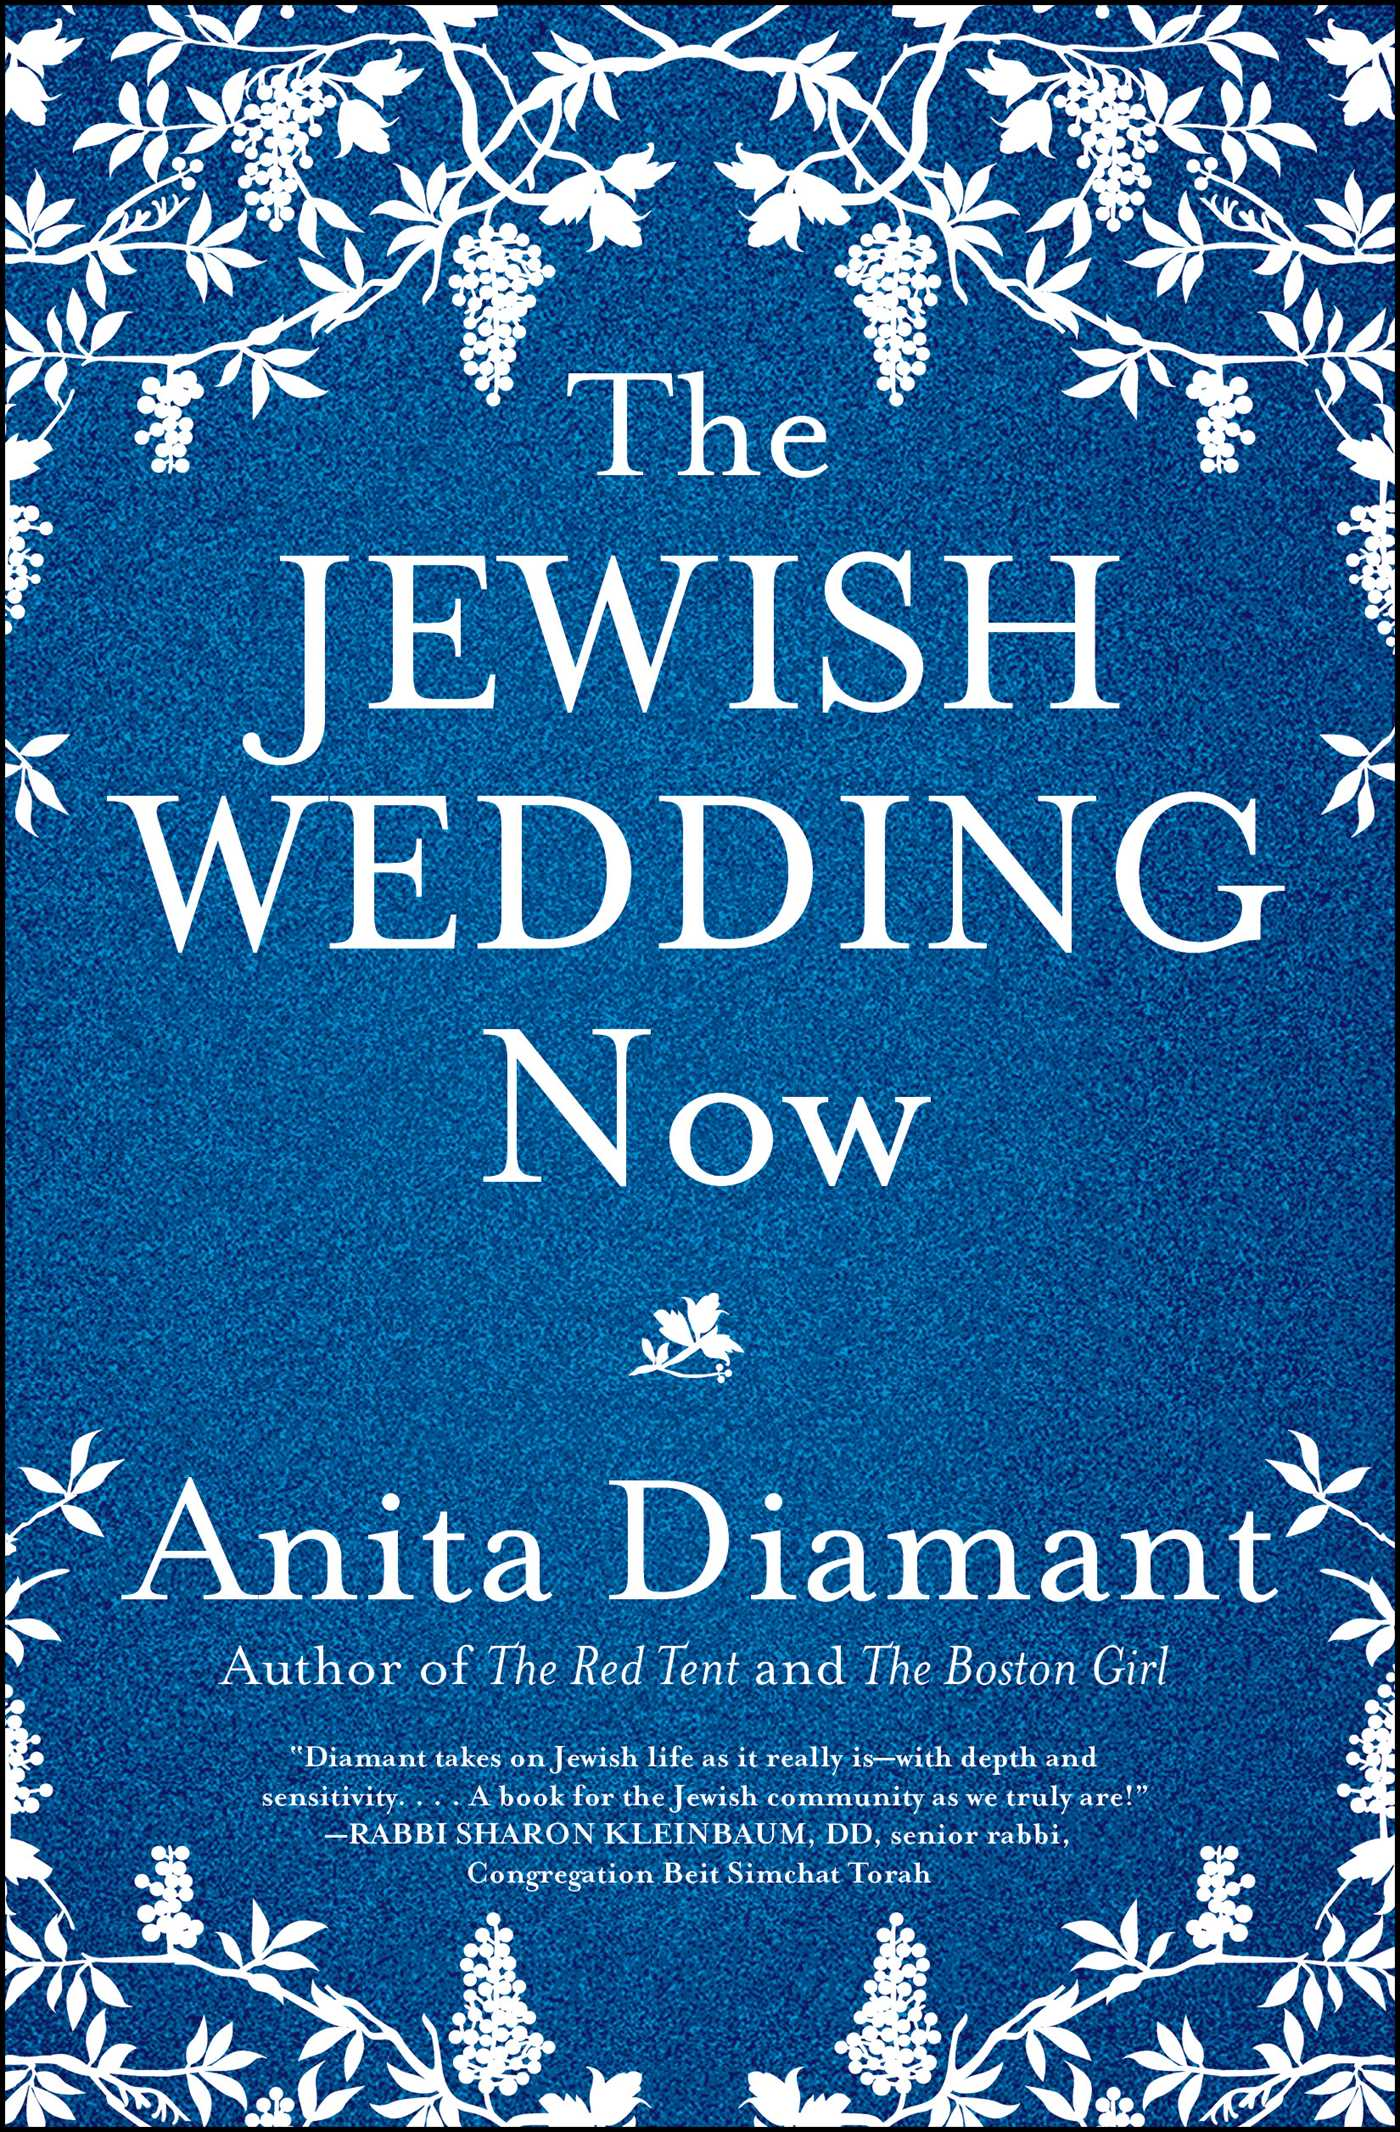 The jewish wedding now 9781416576549 hr